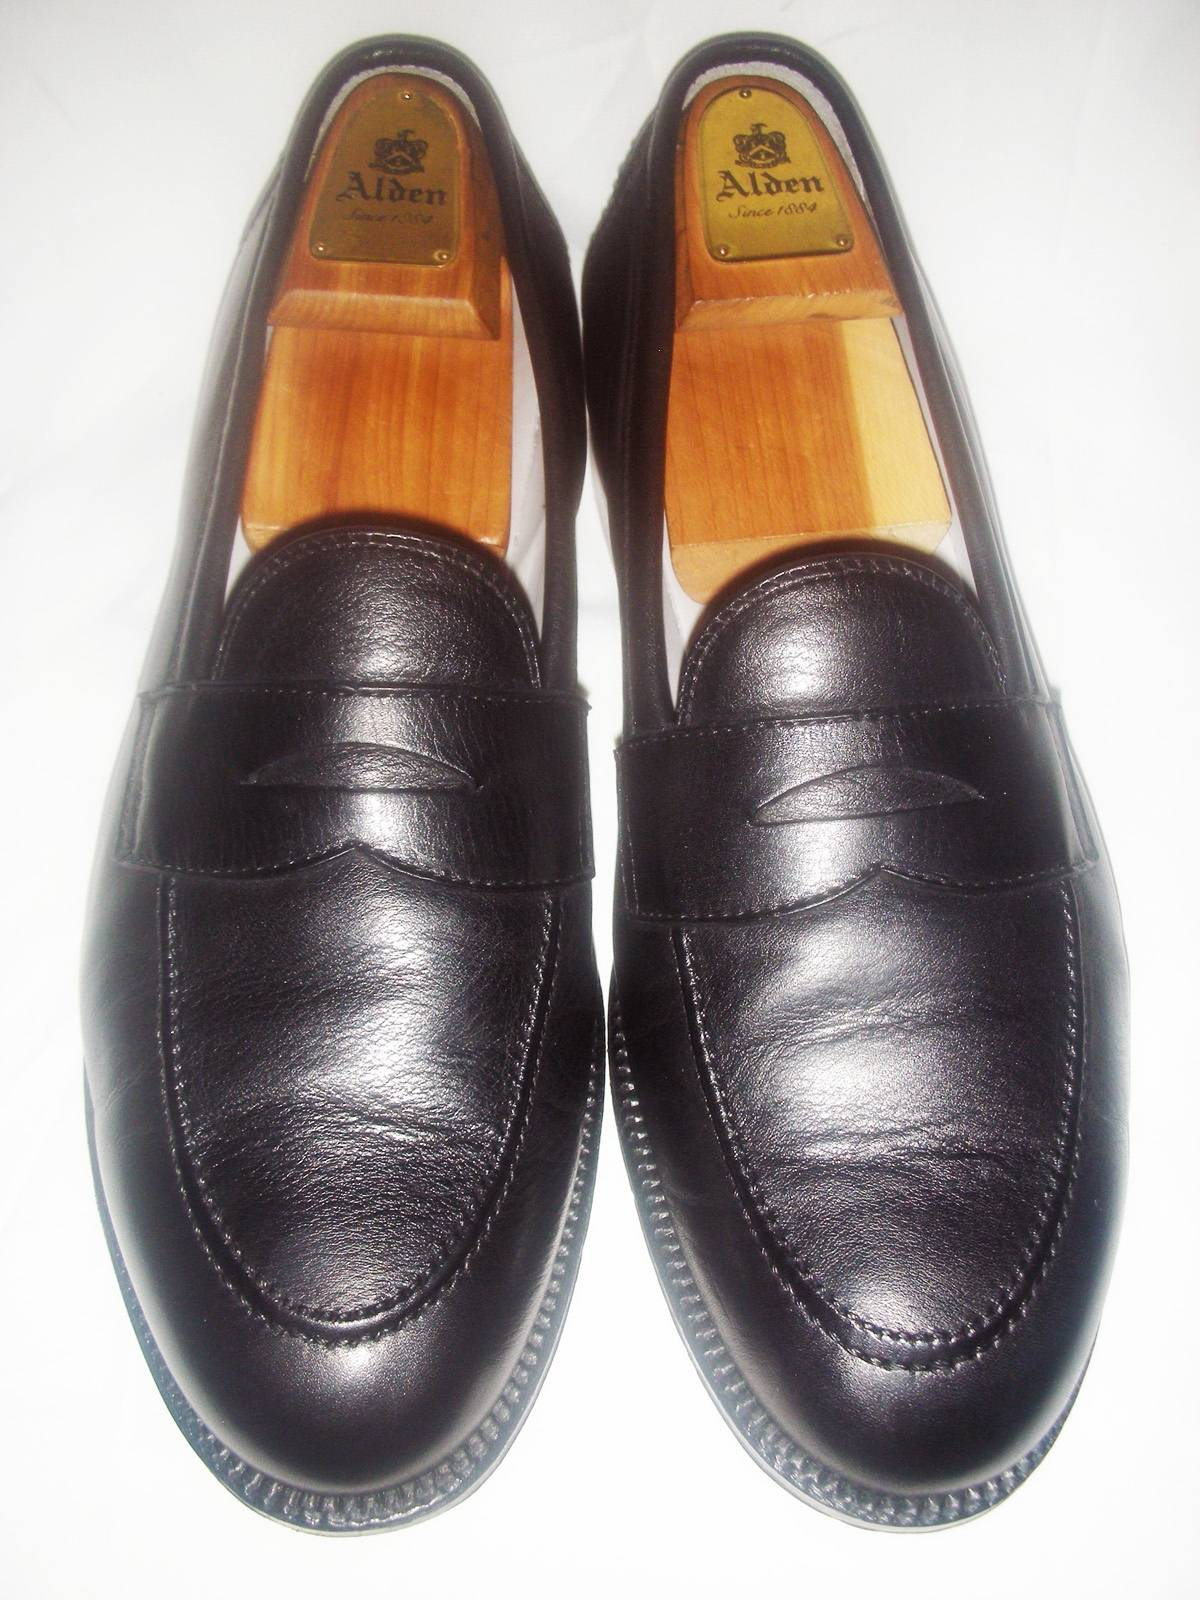 c9a68df5288 Alden  535 ALDEN STYLE 9695F BLACK CALFSKIN FLEX PENNY LOAFERS Size 10.5 -  Casual Leather Shoes for Sale - Grailed